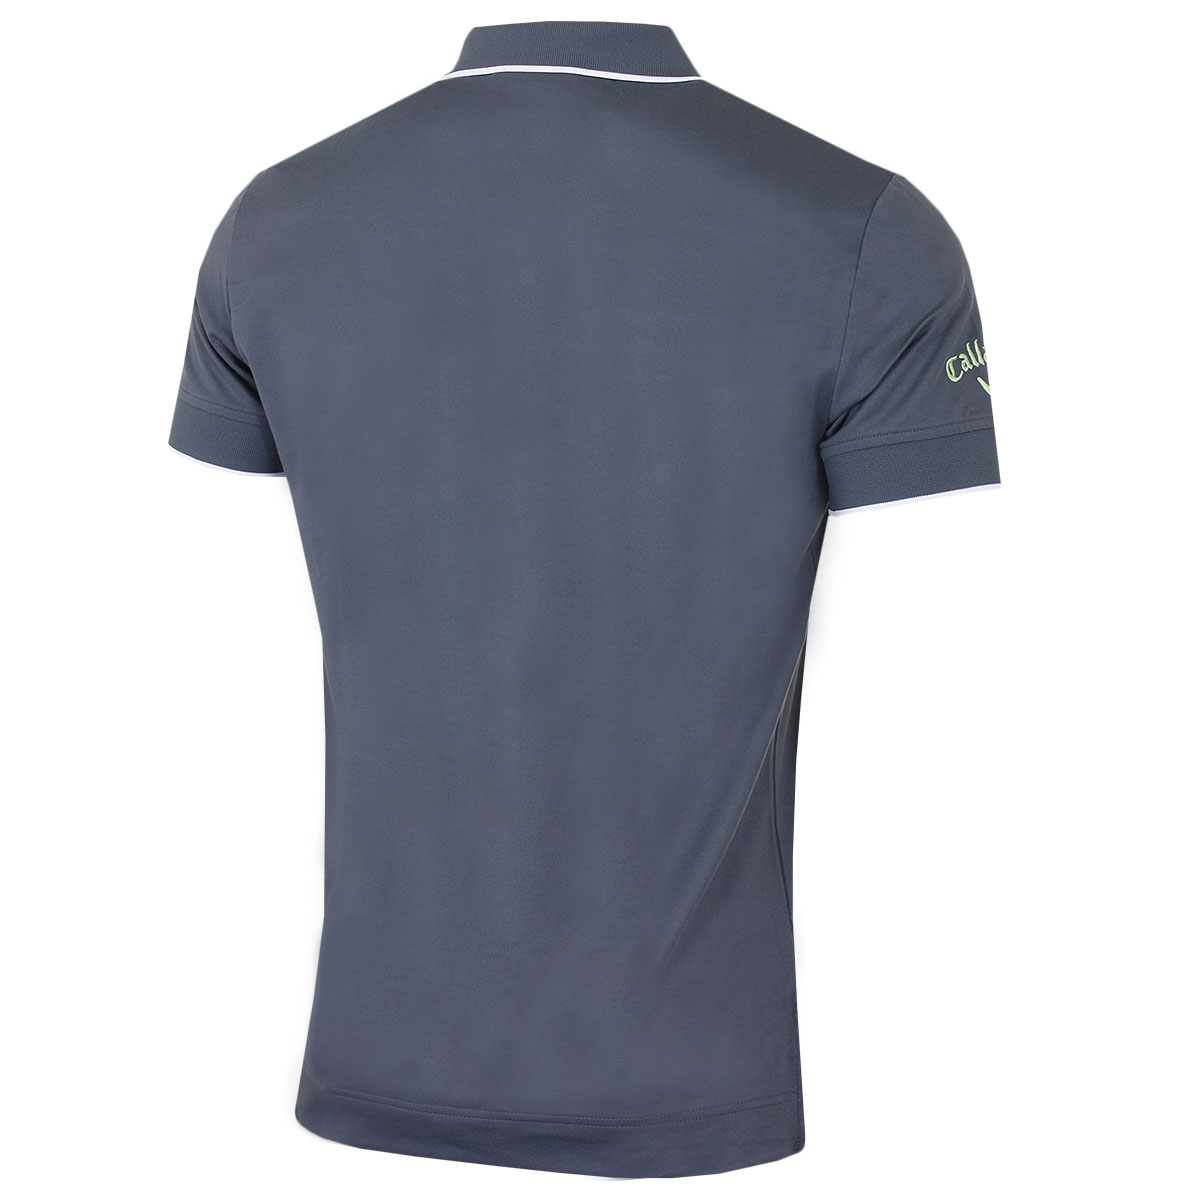 Callaway-Golf-Mens-X-Range-Stretch-Chest-Piped-Polo-Shirt-60-OFF-RRP thumbnail 12